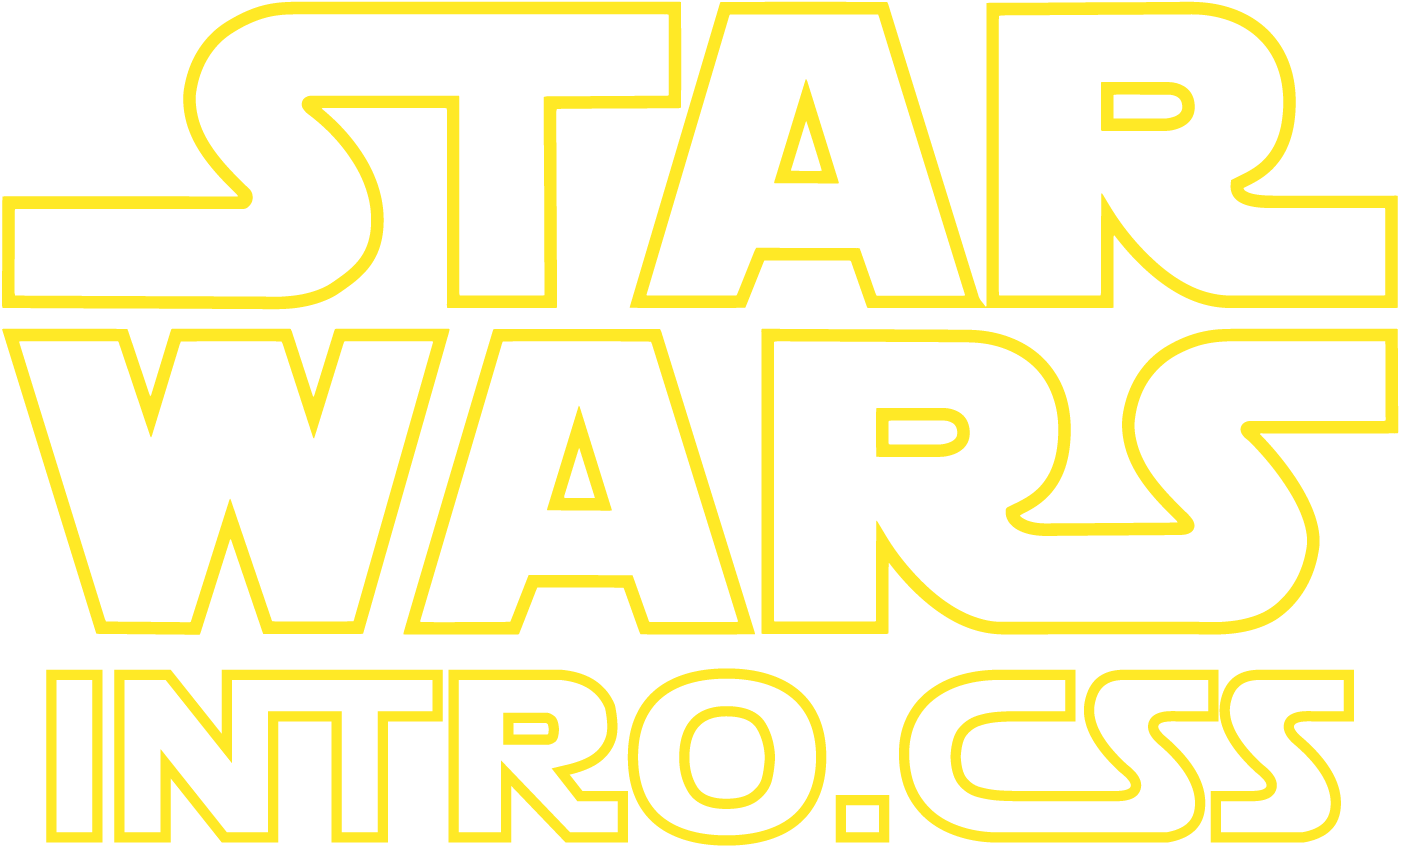 Star Wars Intro : The Star Wars Intro Crawl in Pure CSS